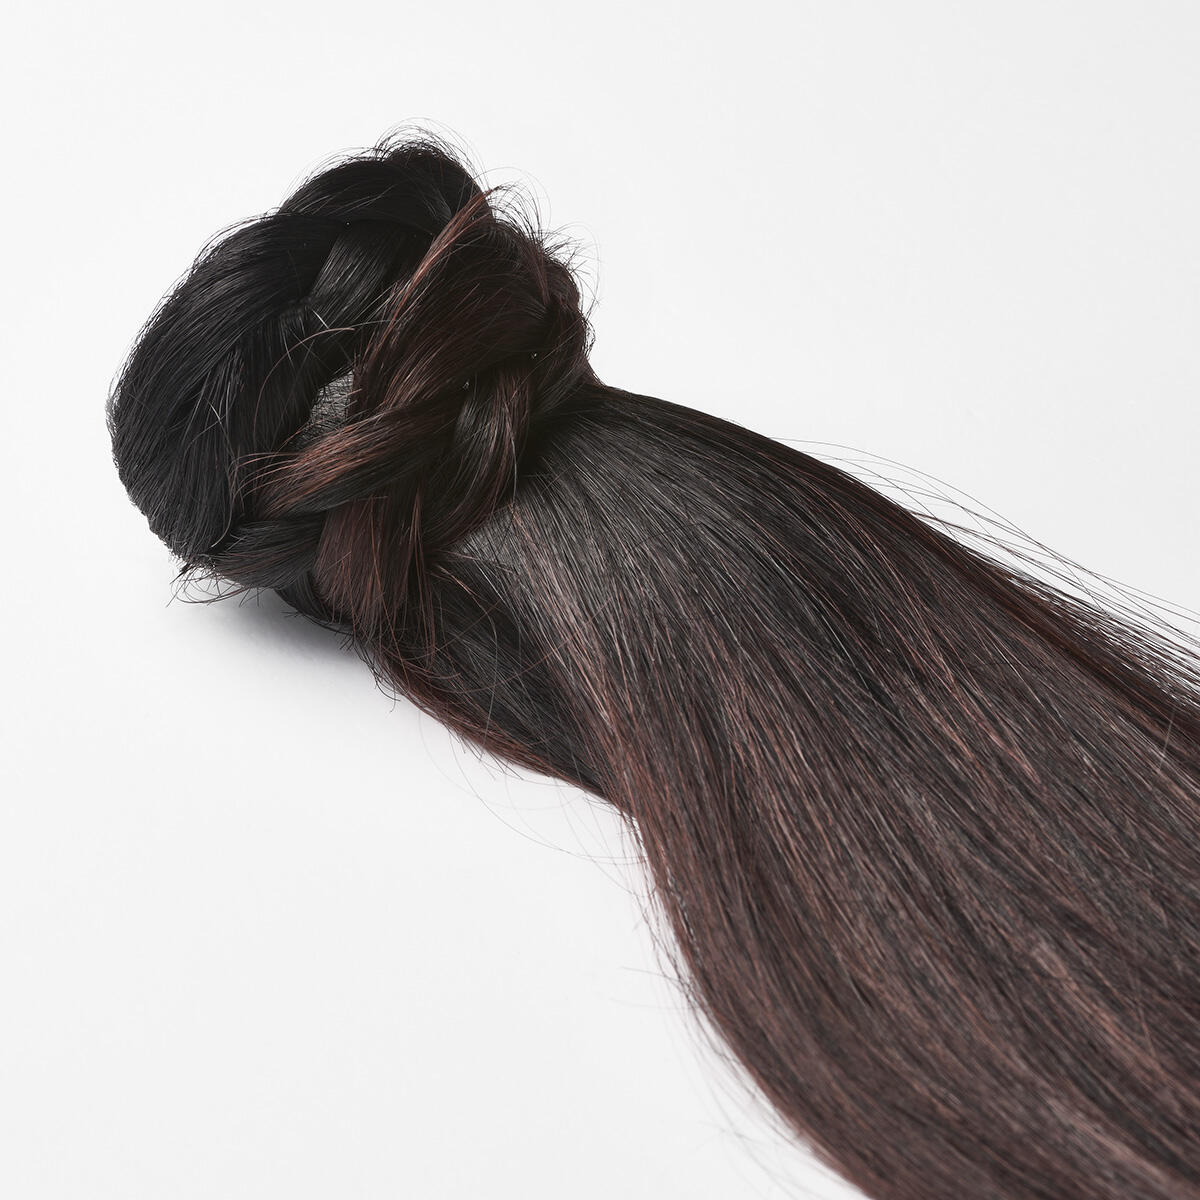 Clip-in Ponytail Ponytail made of real hair B1.0/6.12 Cherry Infused Black Balayage 50 cm